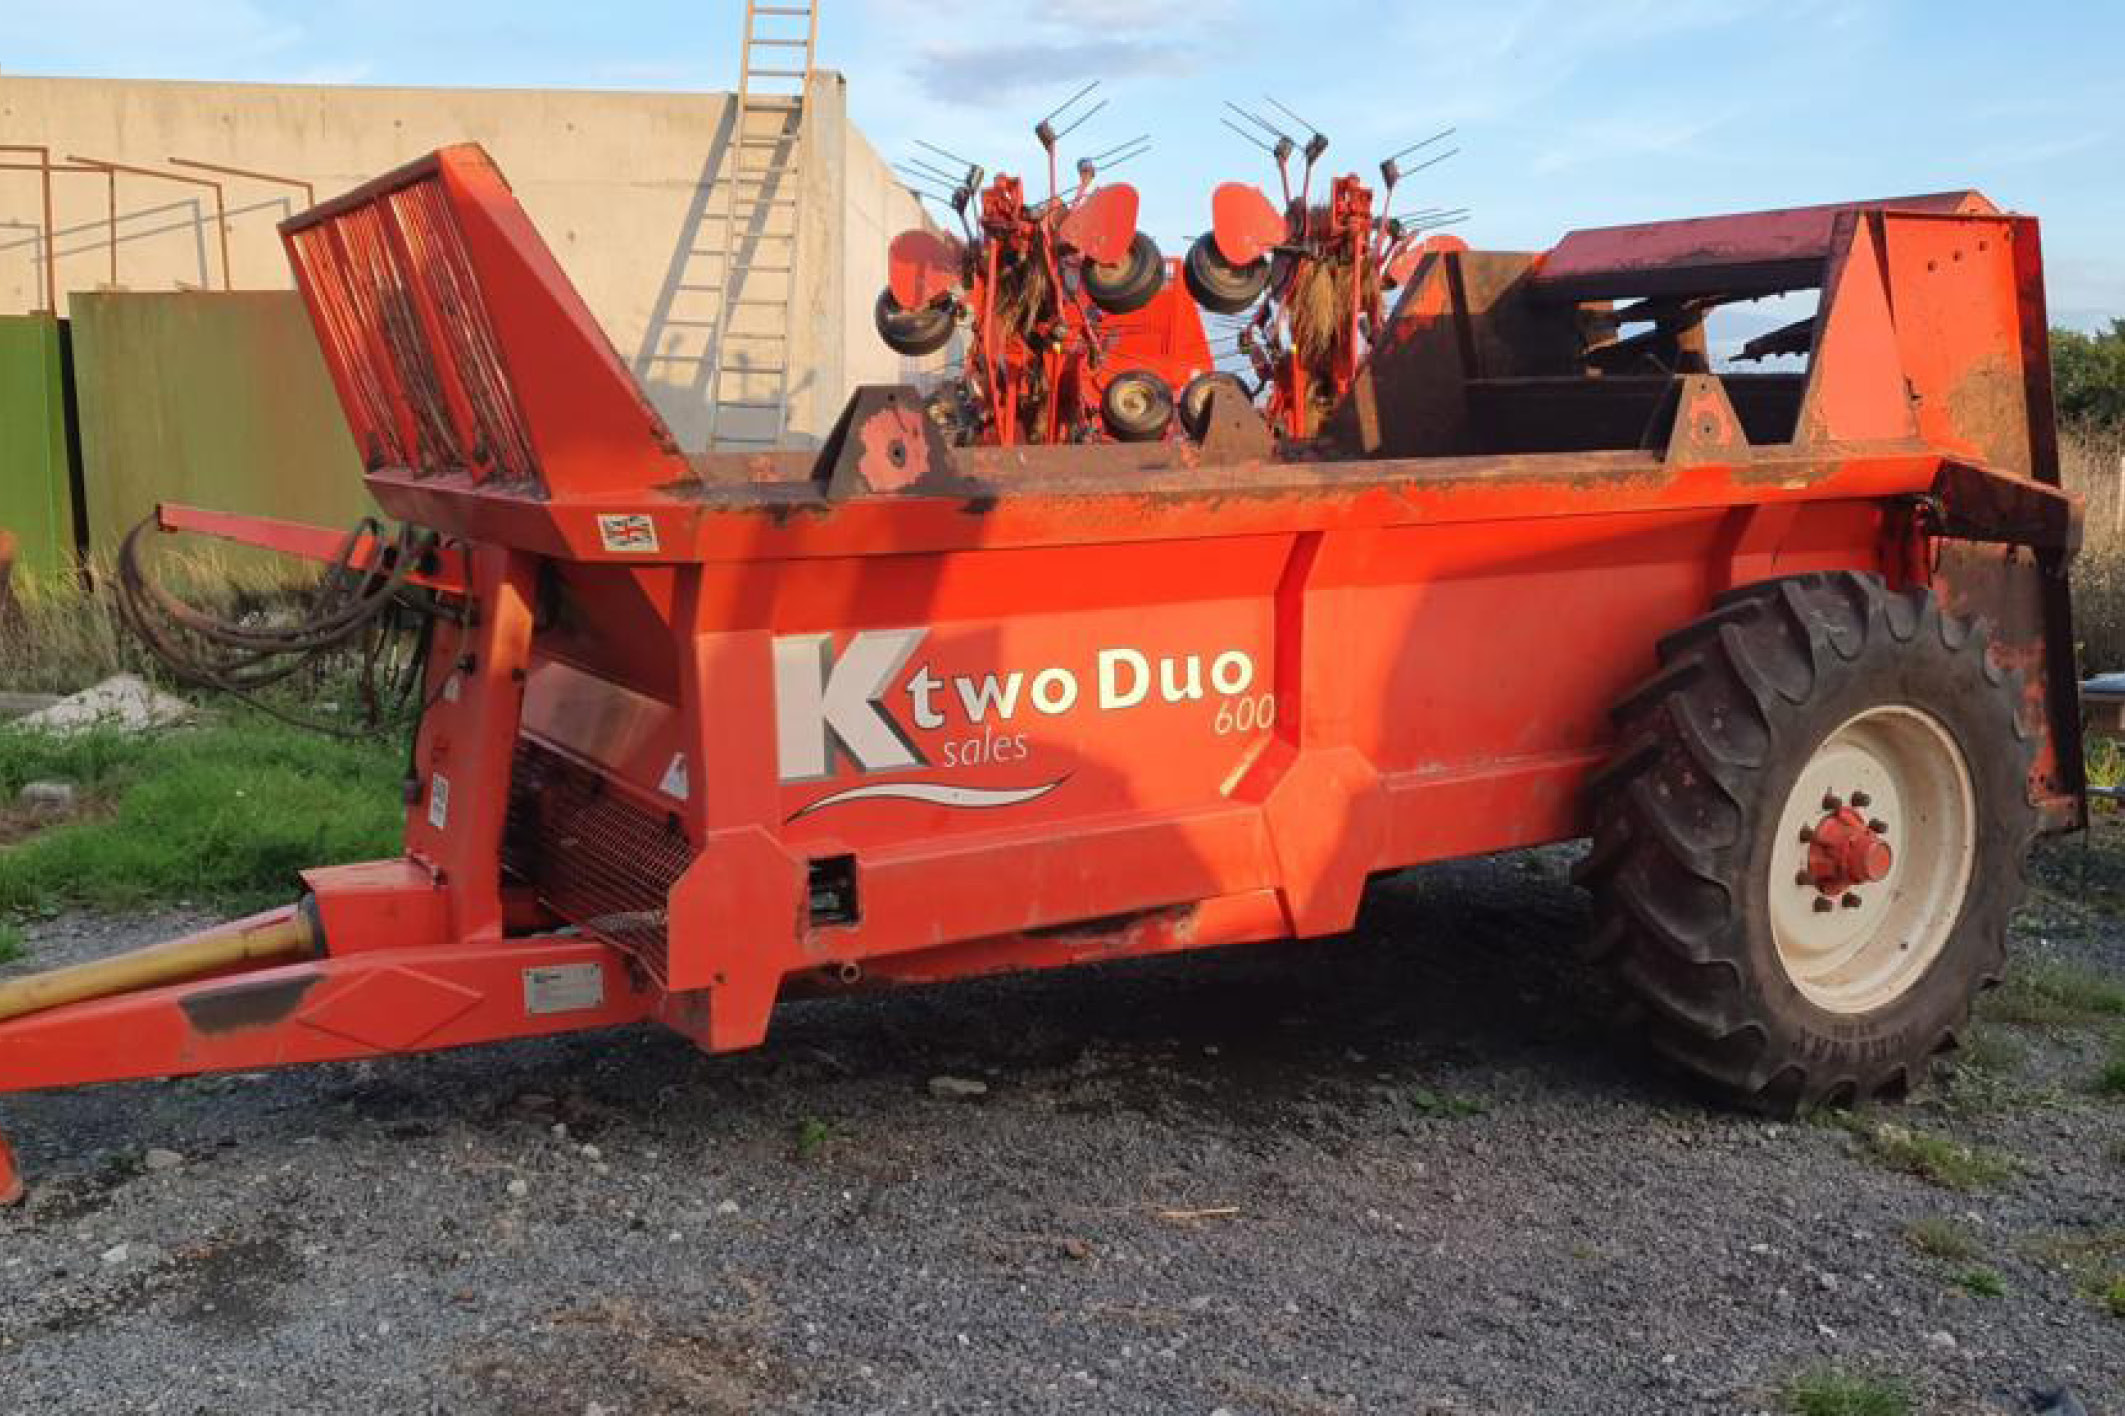 K Two Duo 600 muck spreader (PK131)